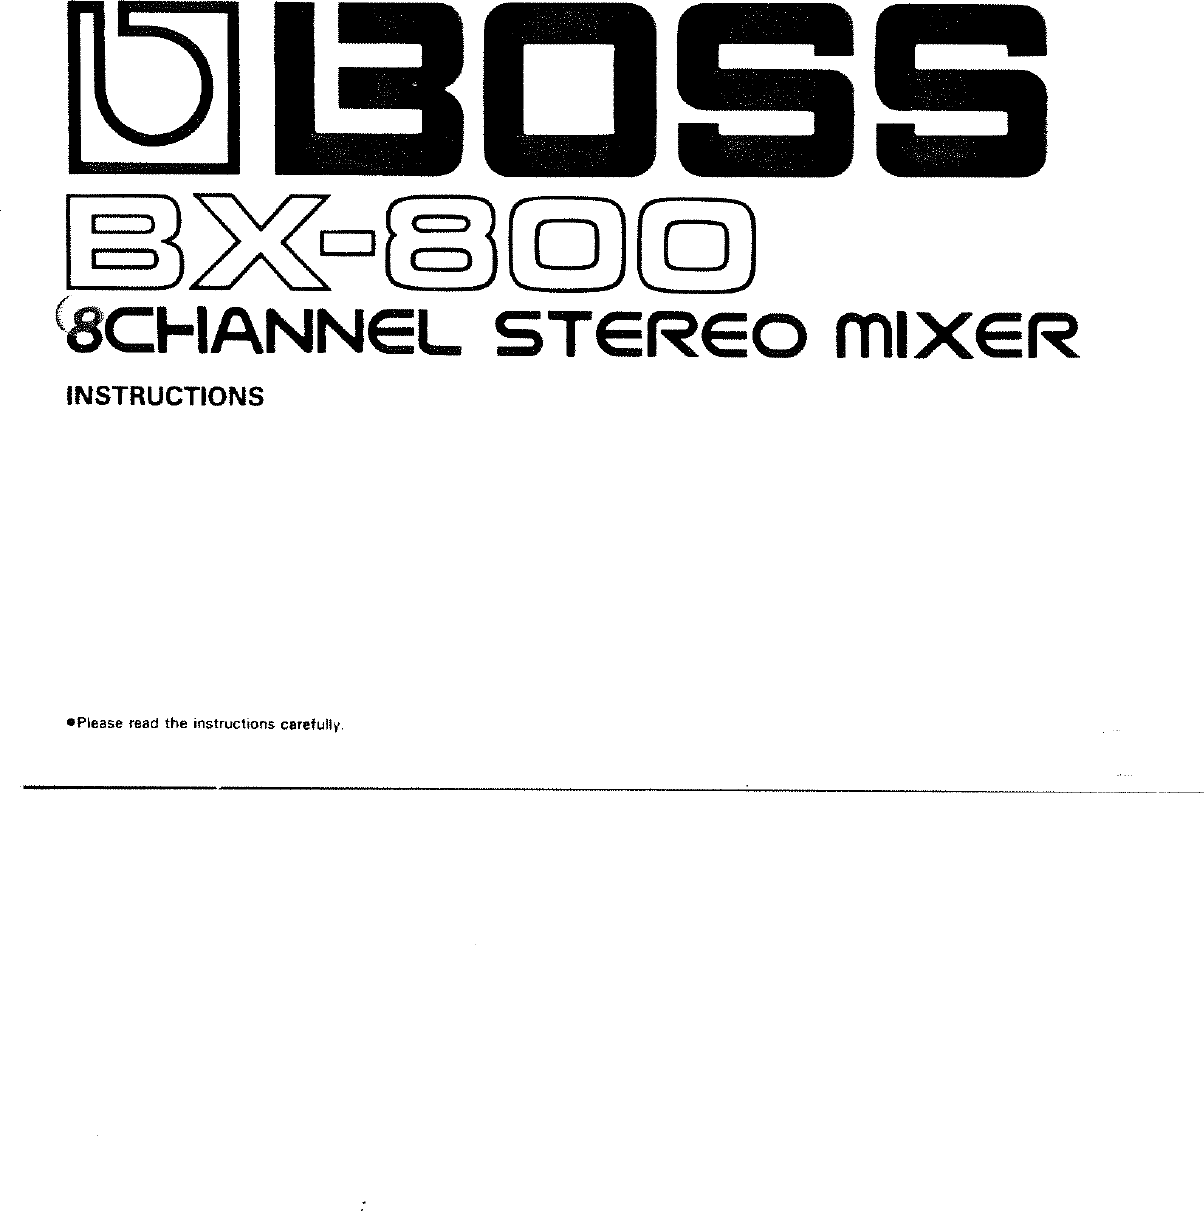 Boss Bx 800 Instruction Manual ManualsLib Makes It Easy To